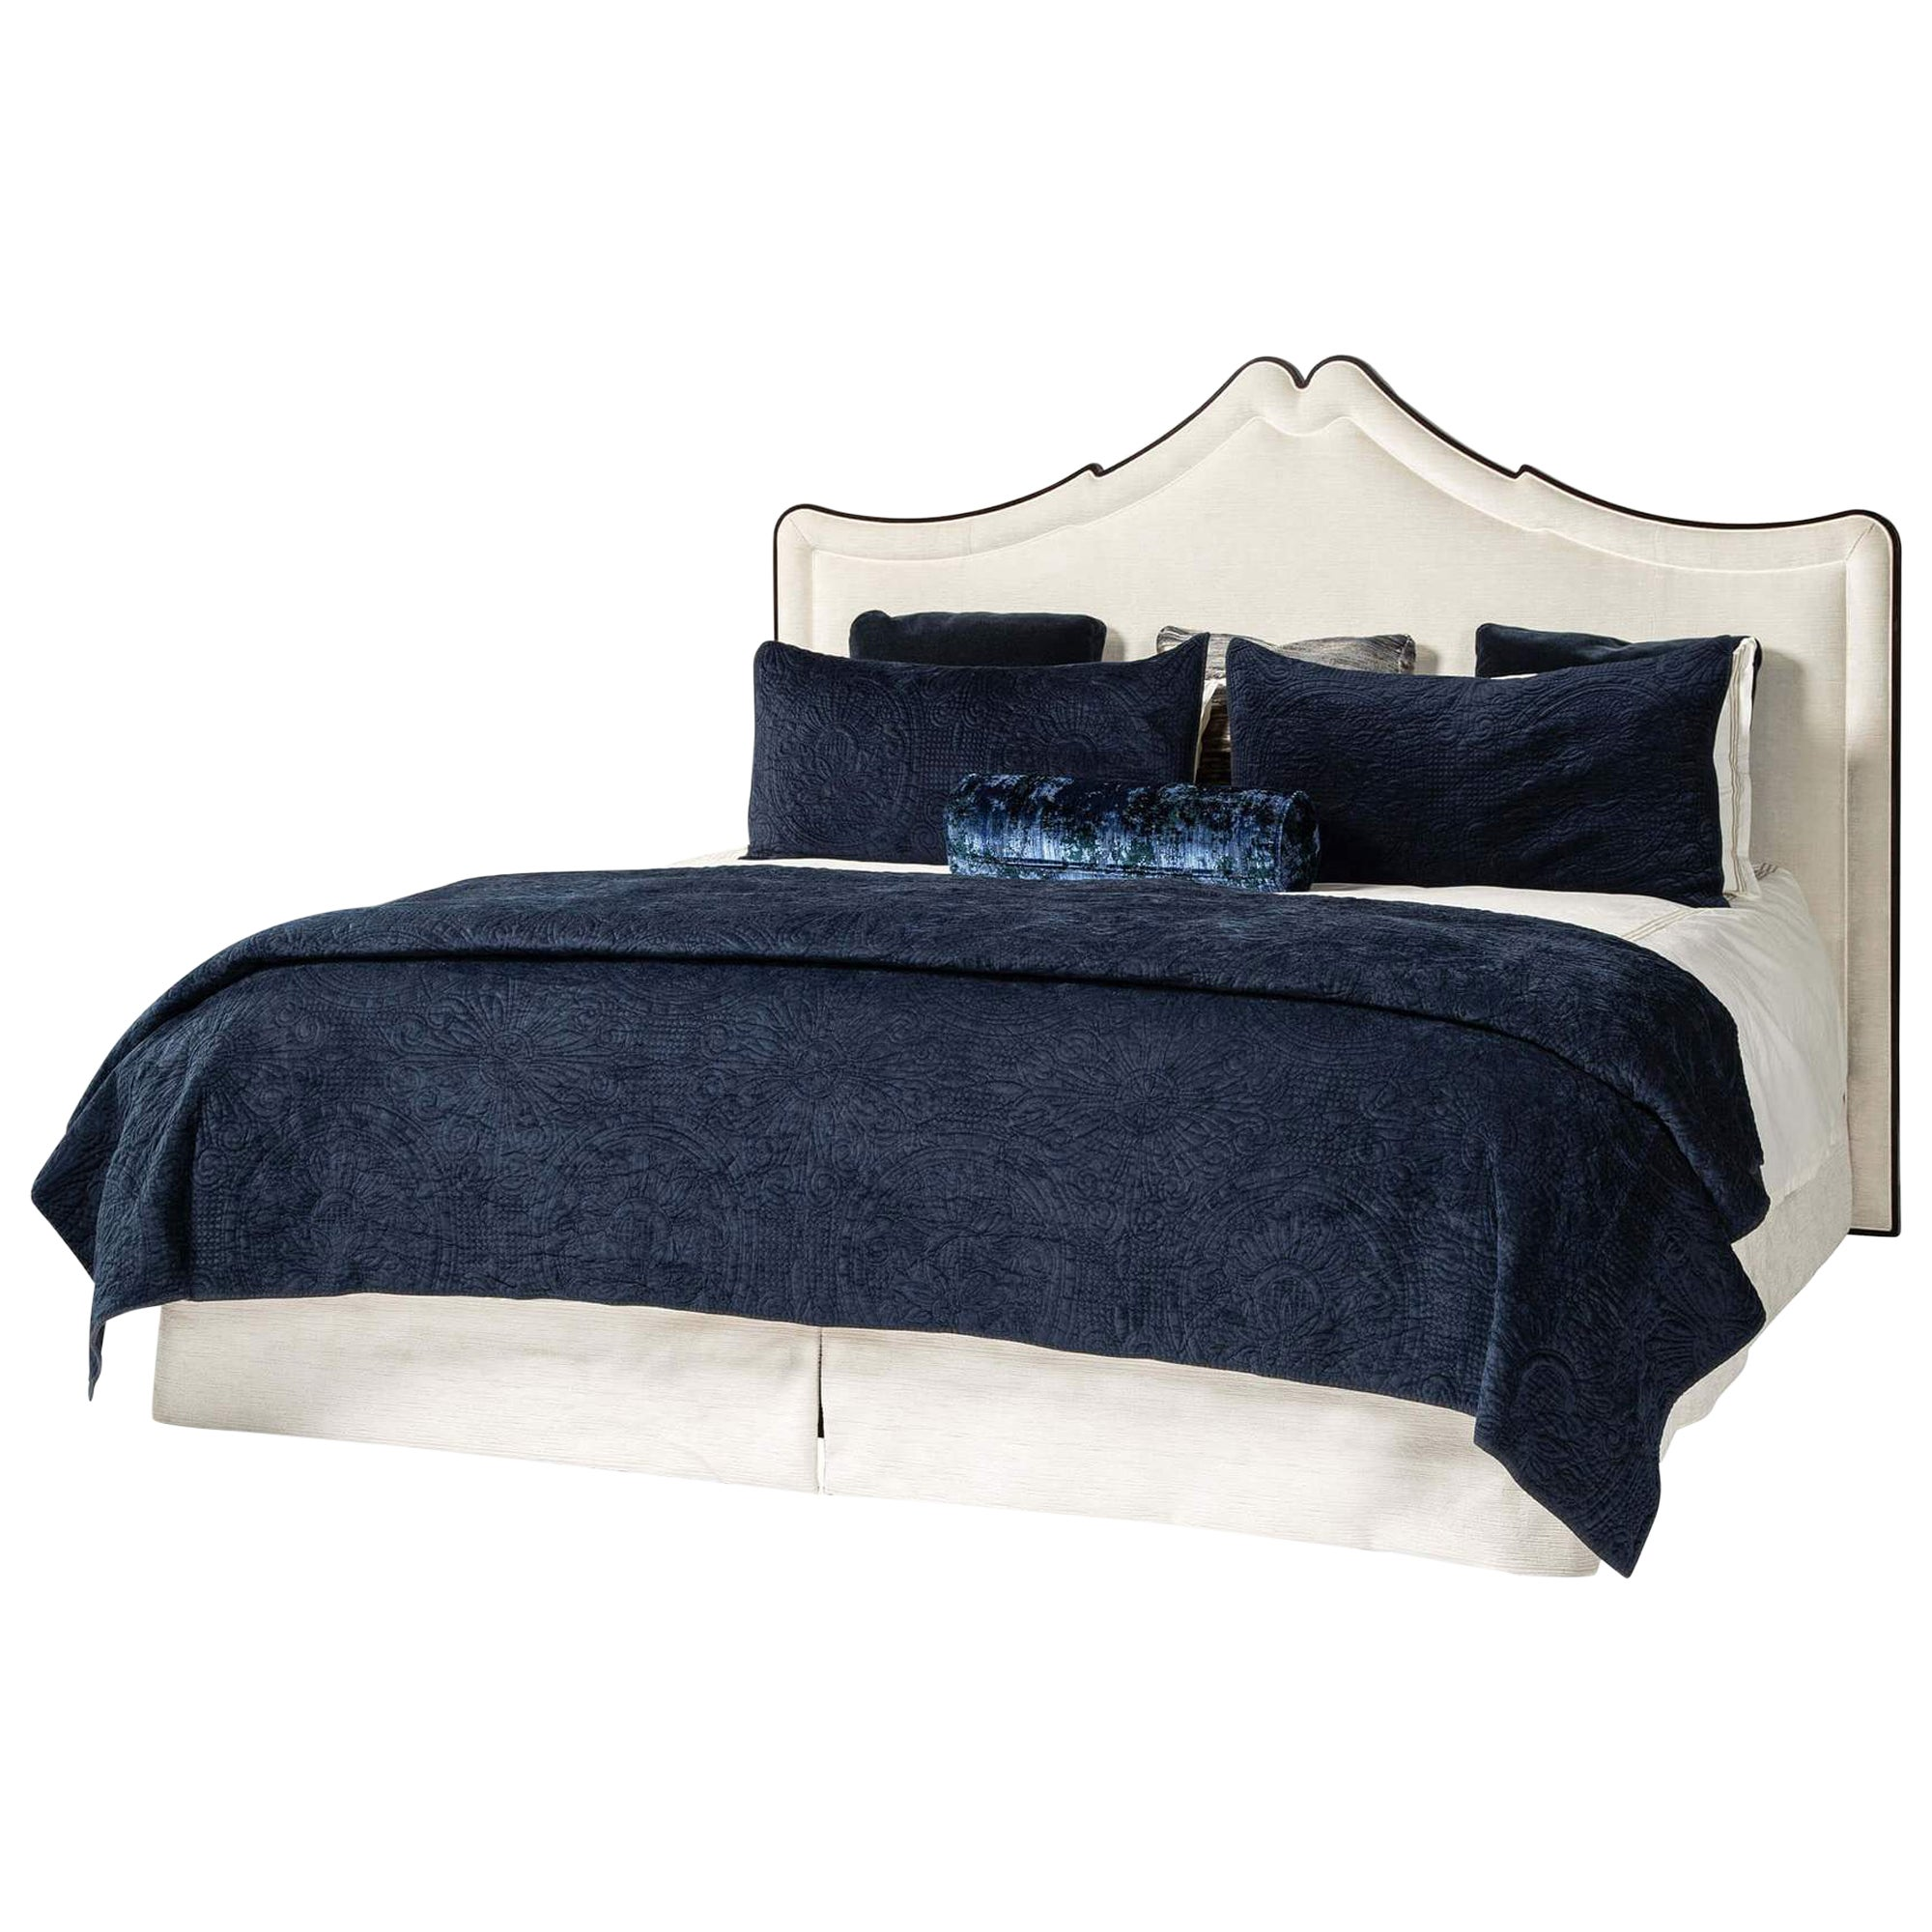 Classic Upholstered King Size Bed